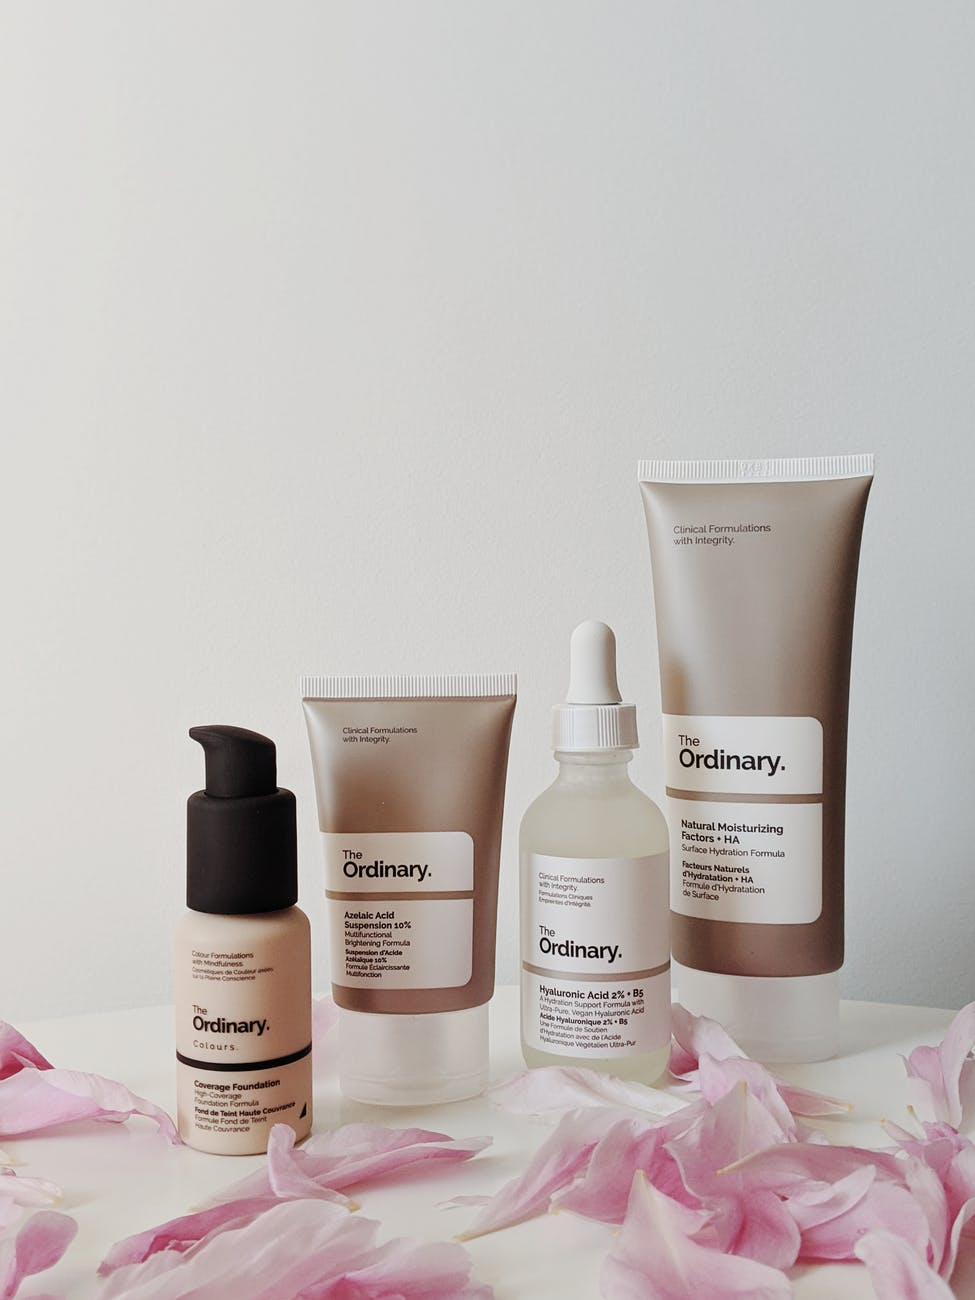 The Ordinary Products are effective and affordable